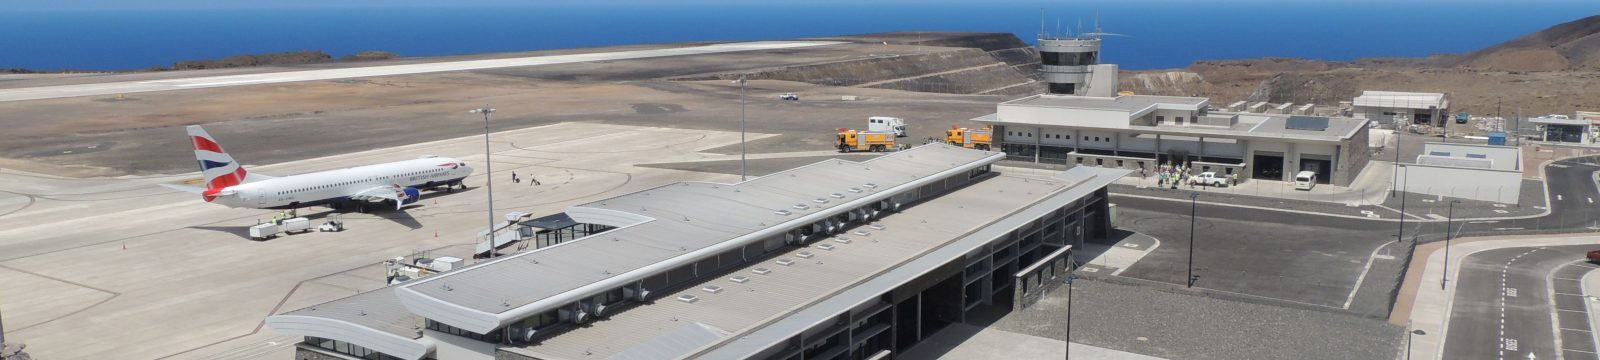 View of the first large passenger aircraft at St Helena Airport parked on the apron